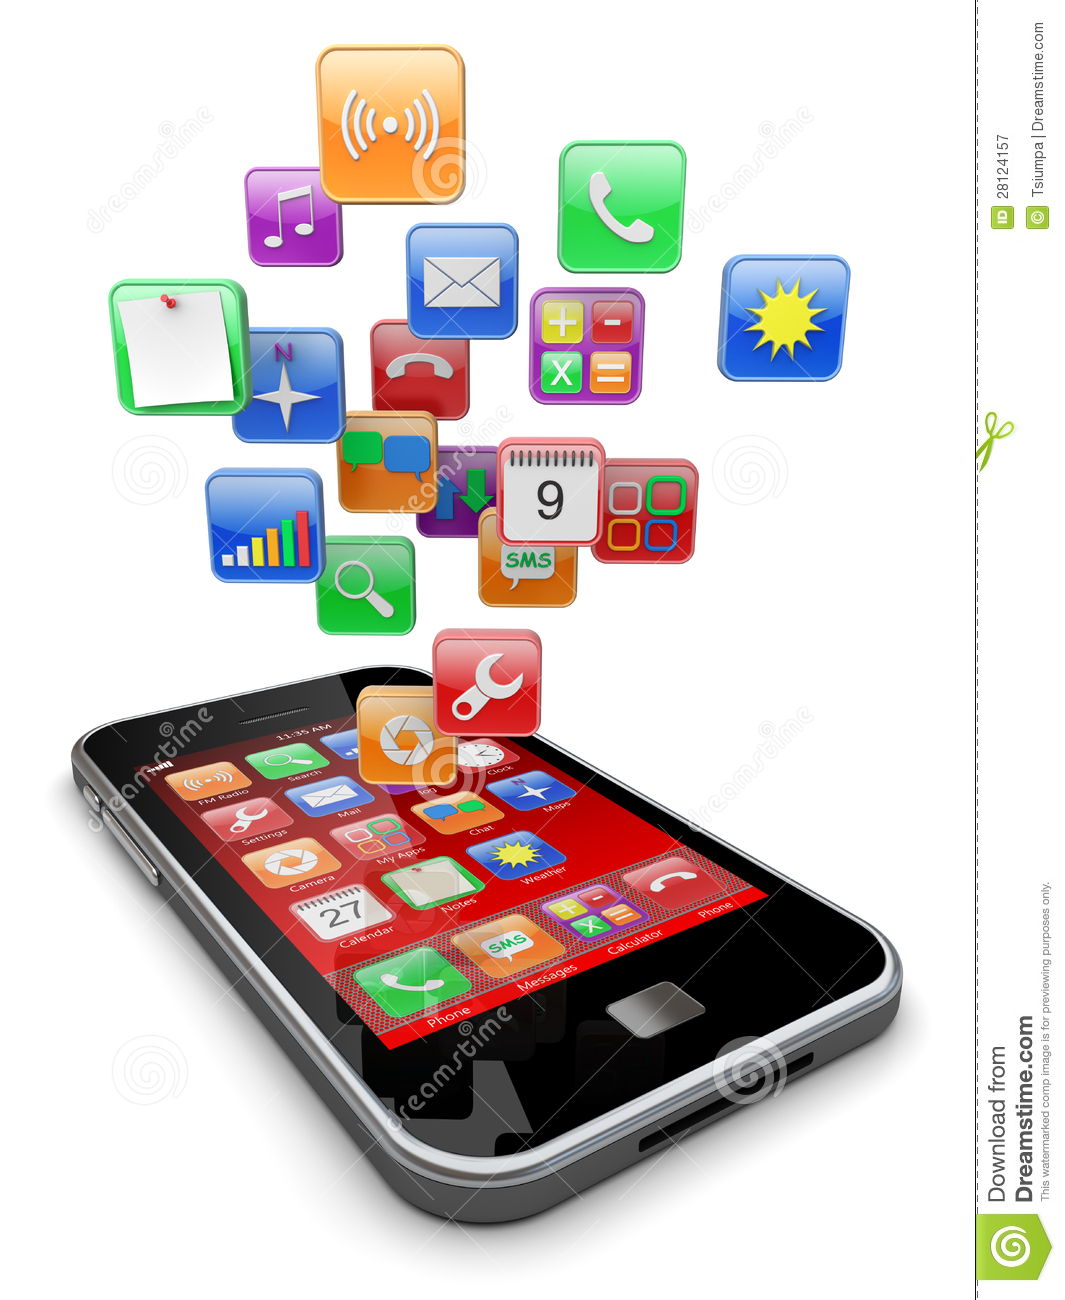 Application Dessin 3d Smartphone Apps Icons Stock Illustration Illustration Of